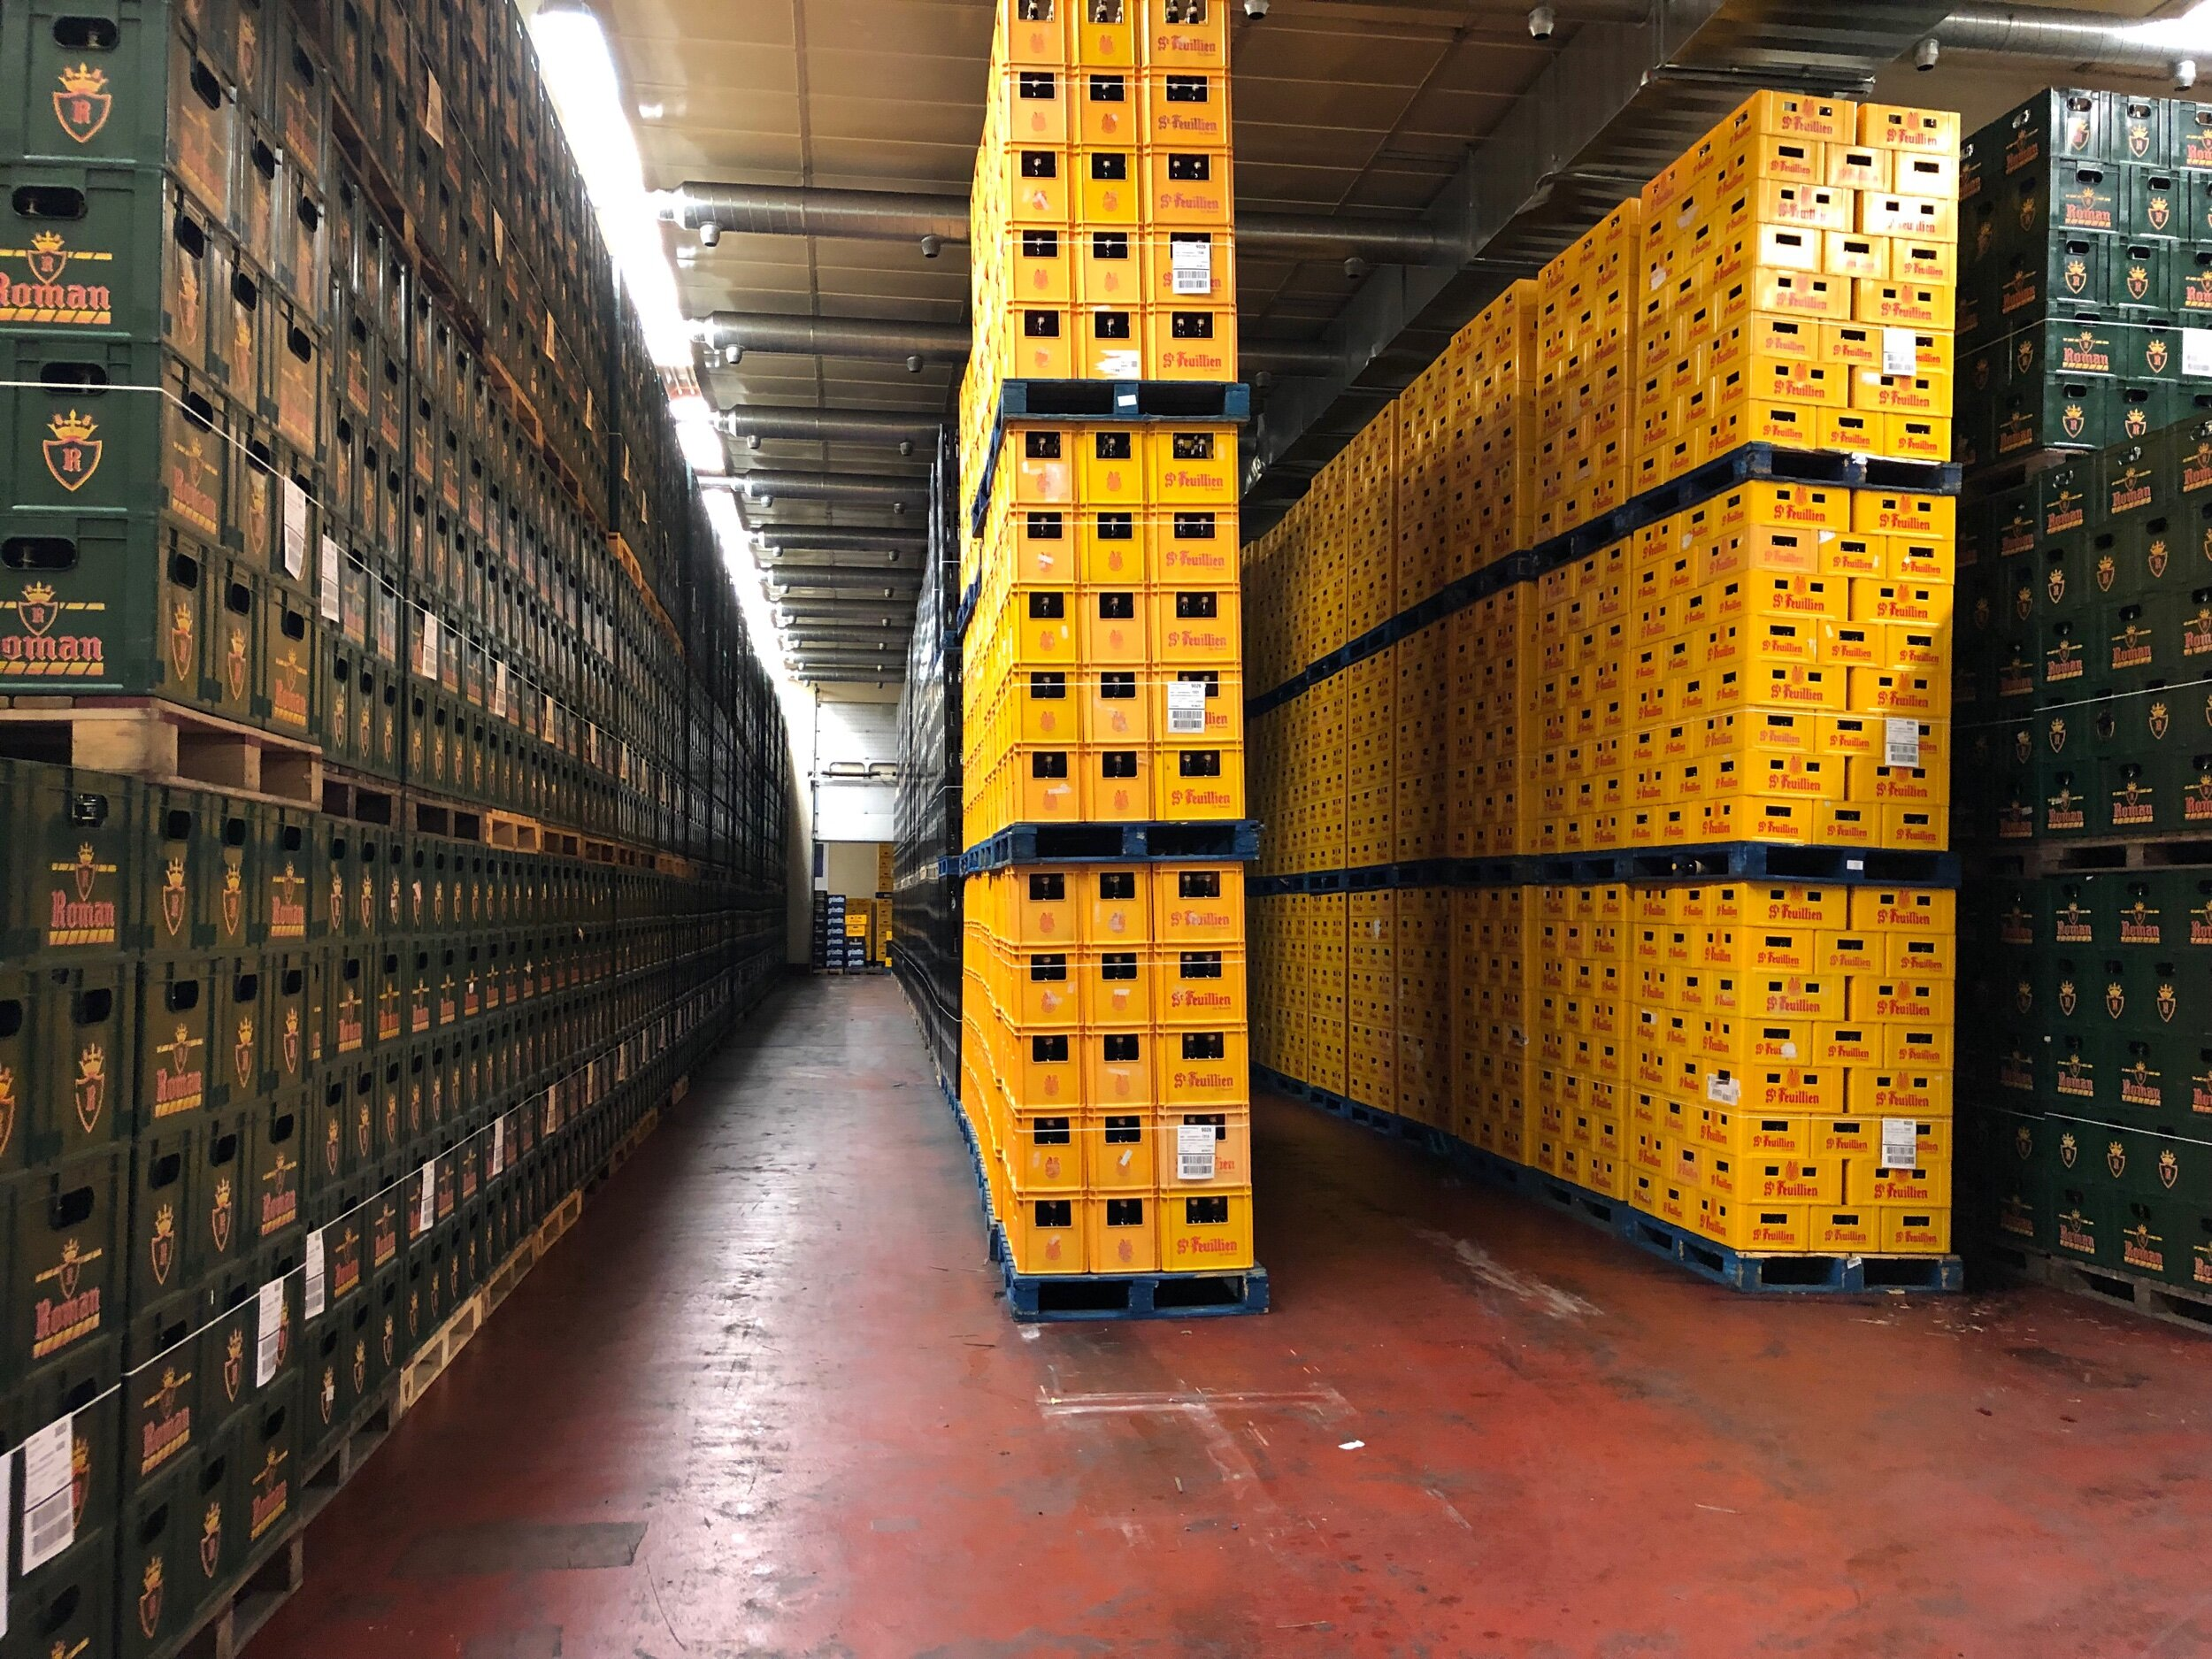 Giant warm room. (The brewery makes about 100,000 hectoliters.) They do the packaging for St. Feuillien, which is why you see those crates in yellow.